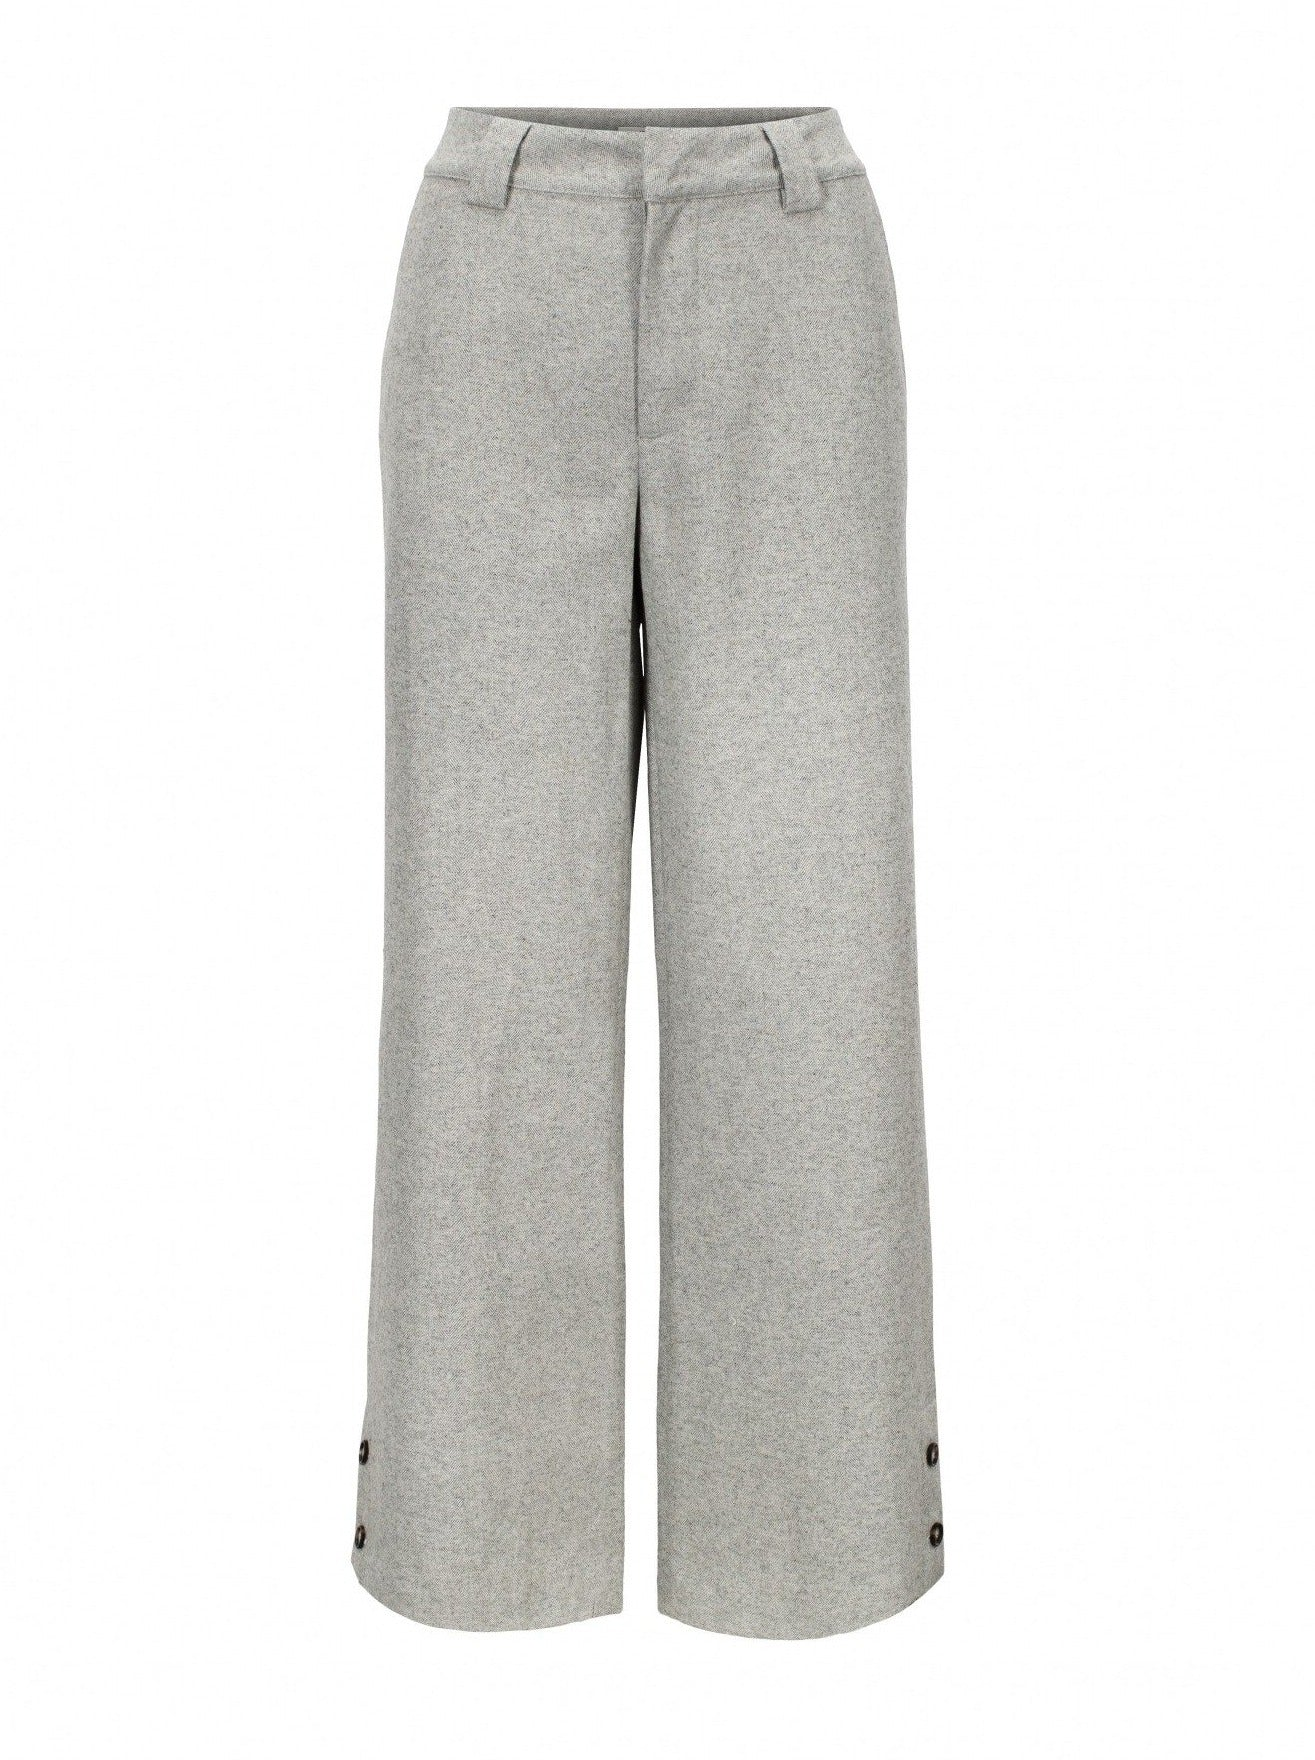 HARLOW PANT | FLINT GREY